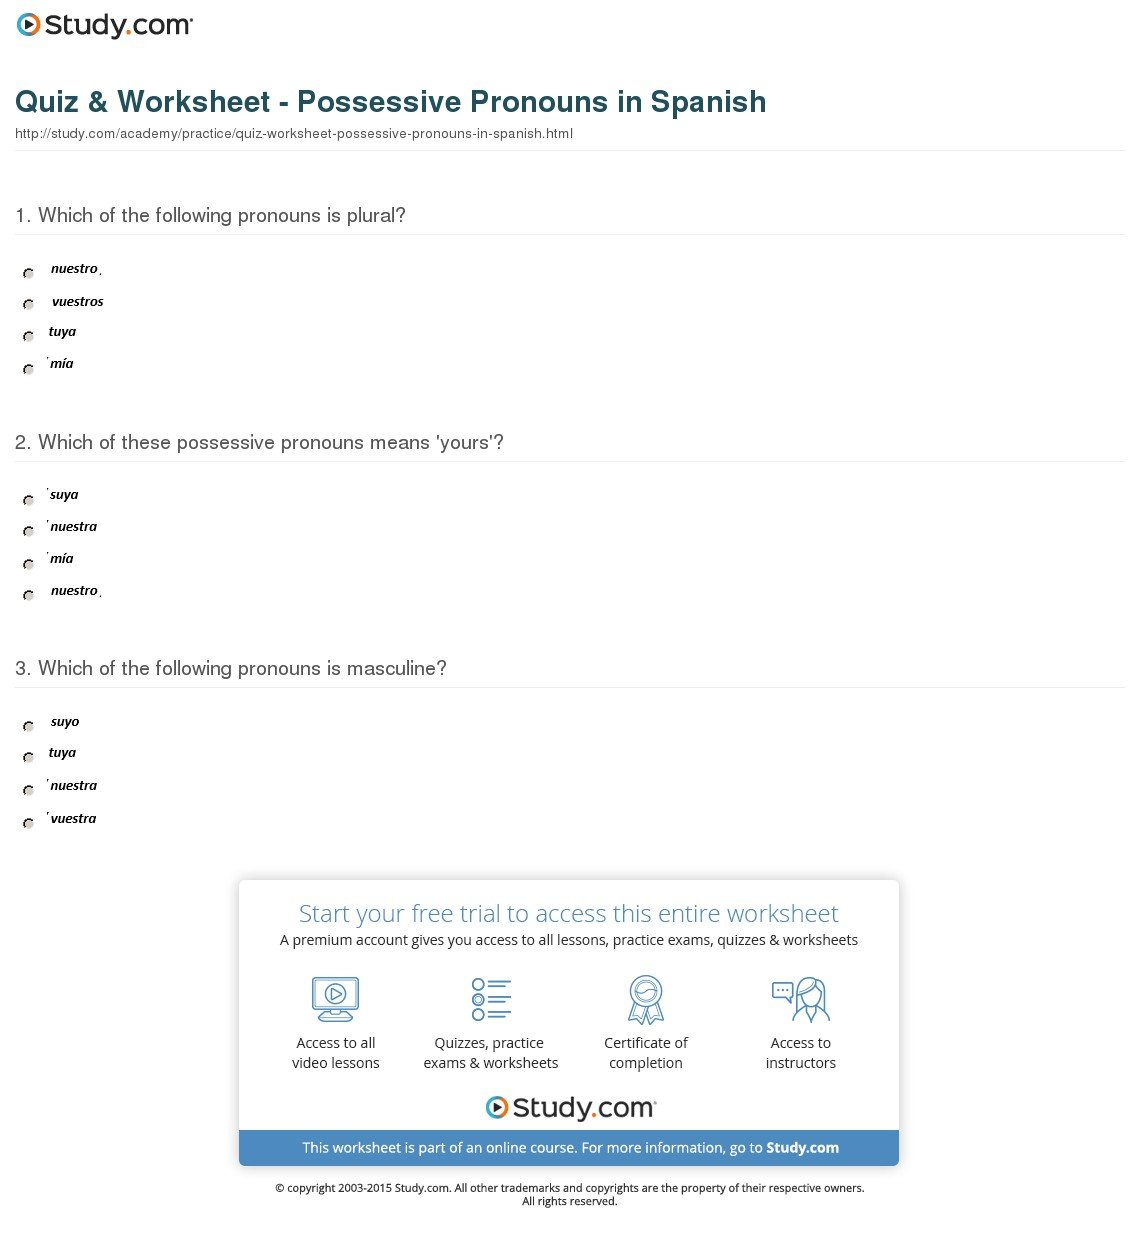 Worksheet 2 Possessive Adjectives Spanish Answers